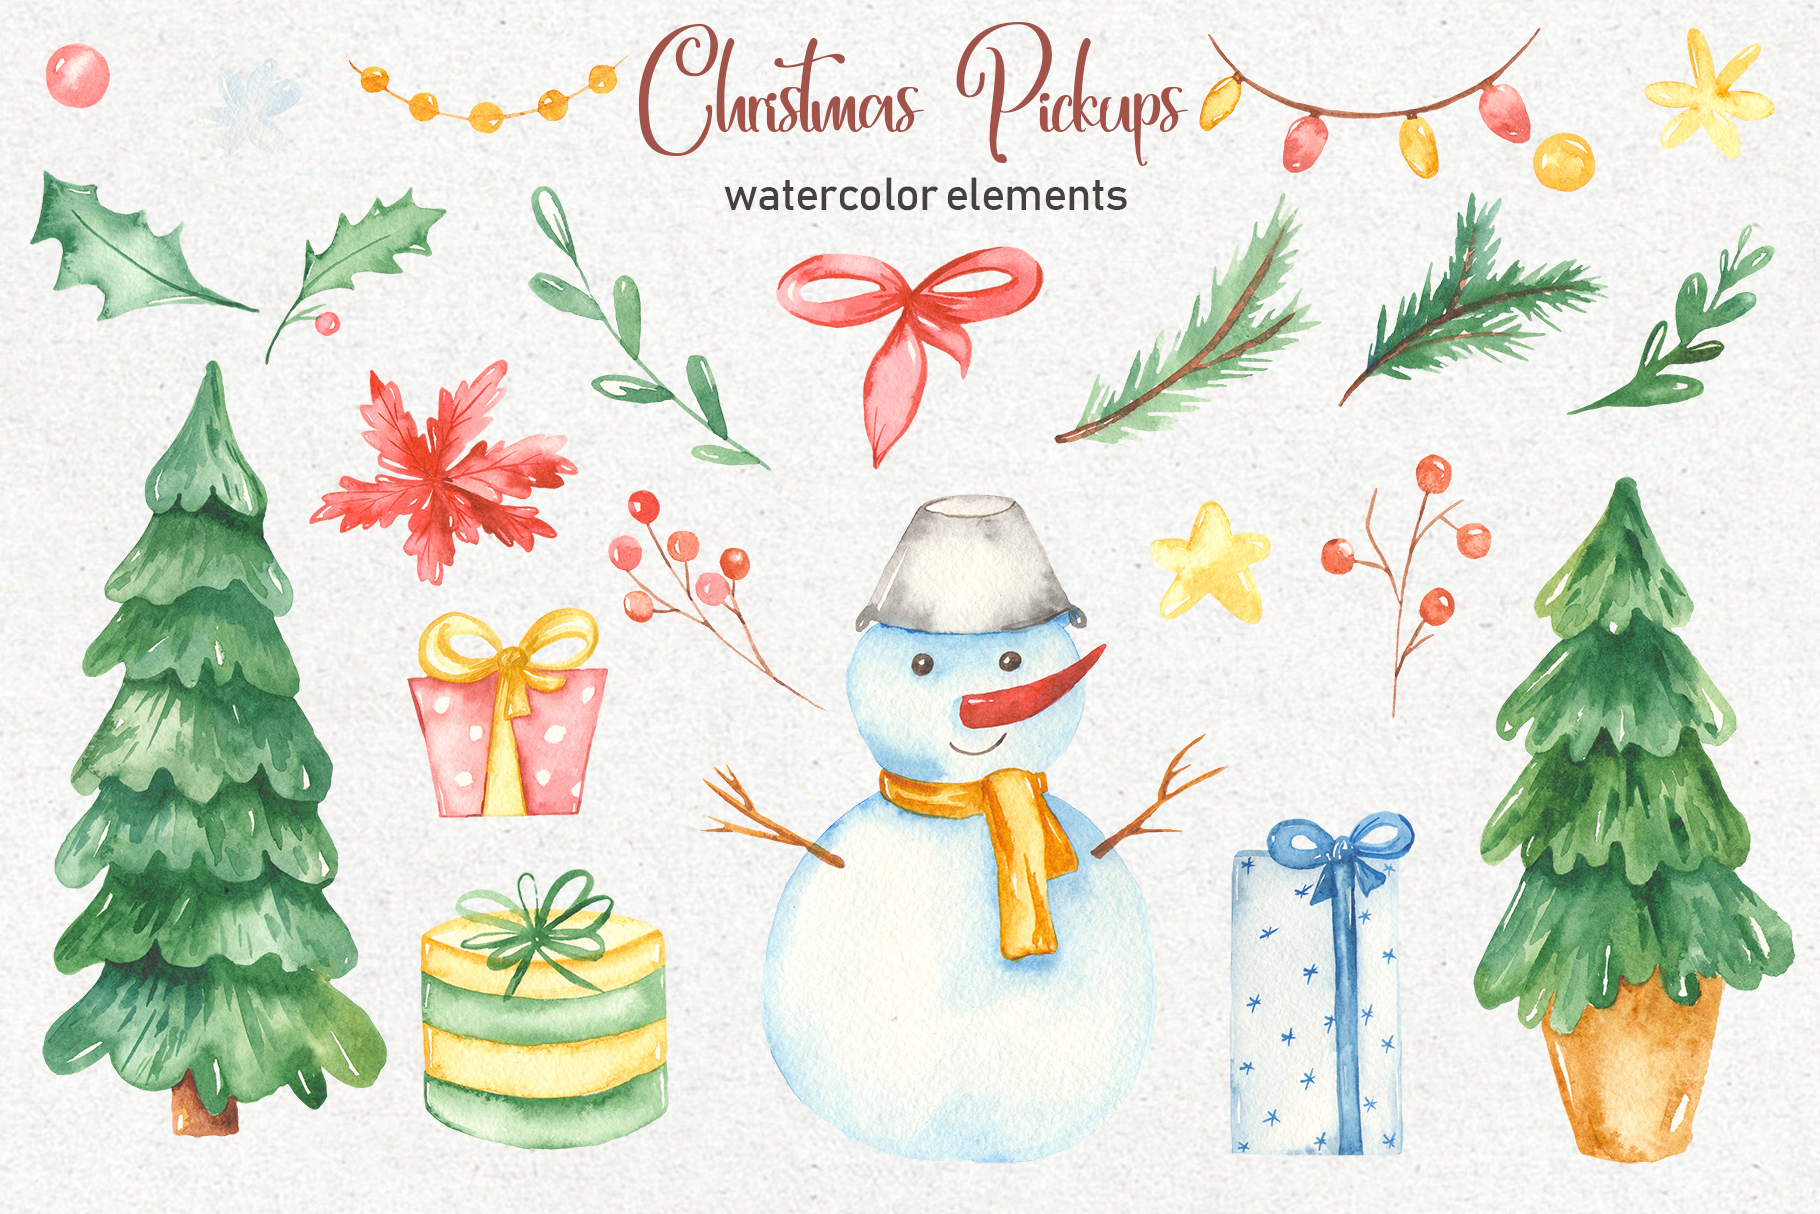 Christmas pickup Watercolor clipart and Christmas elements example image 4